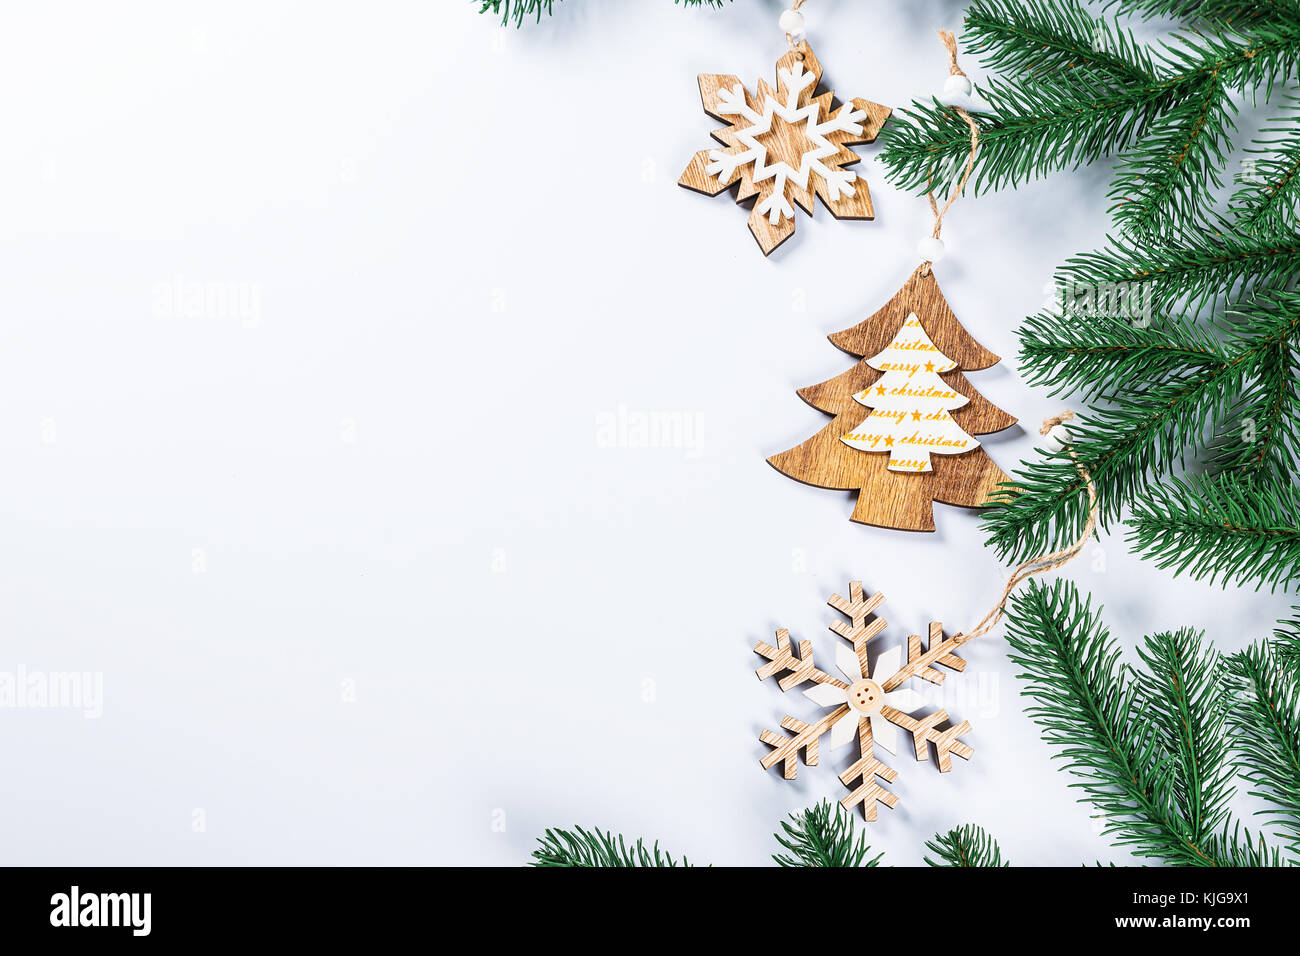 christmas frame with the branches of the christmas tree and wooden decorations on white background simple christmas composition with free space